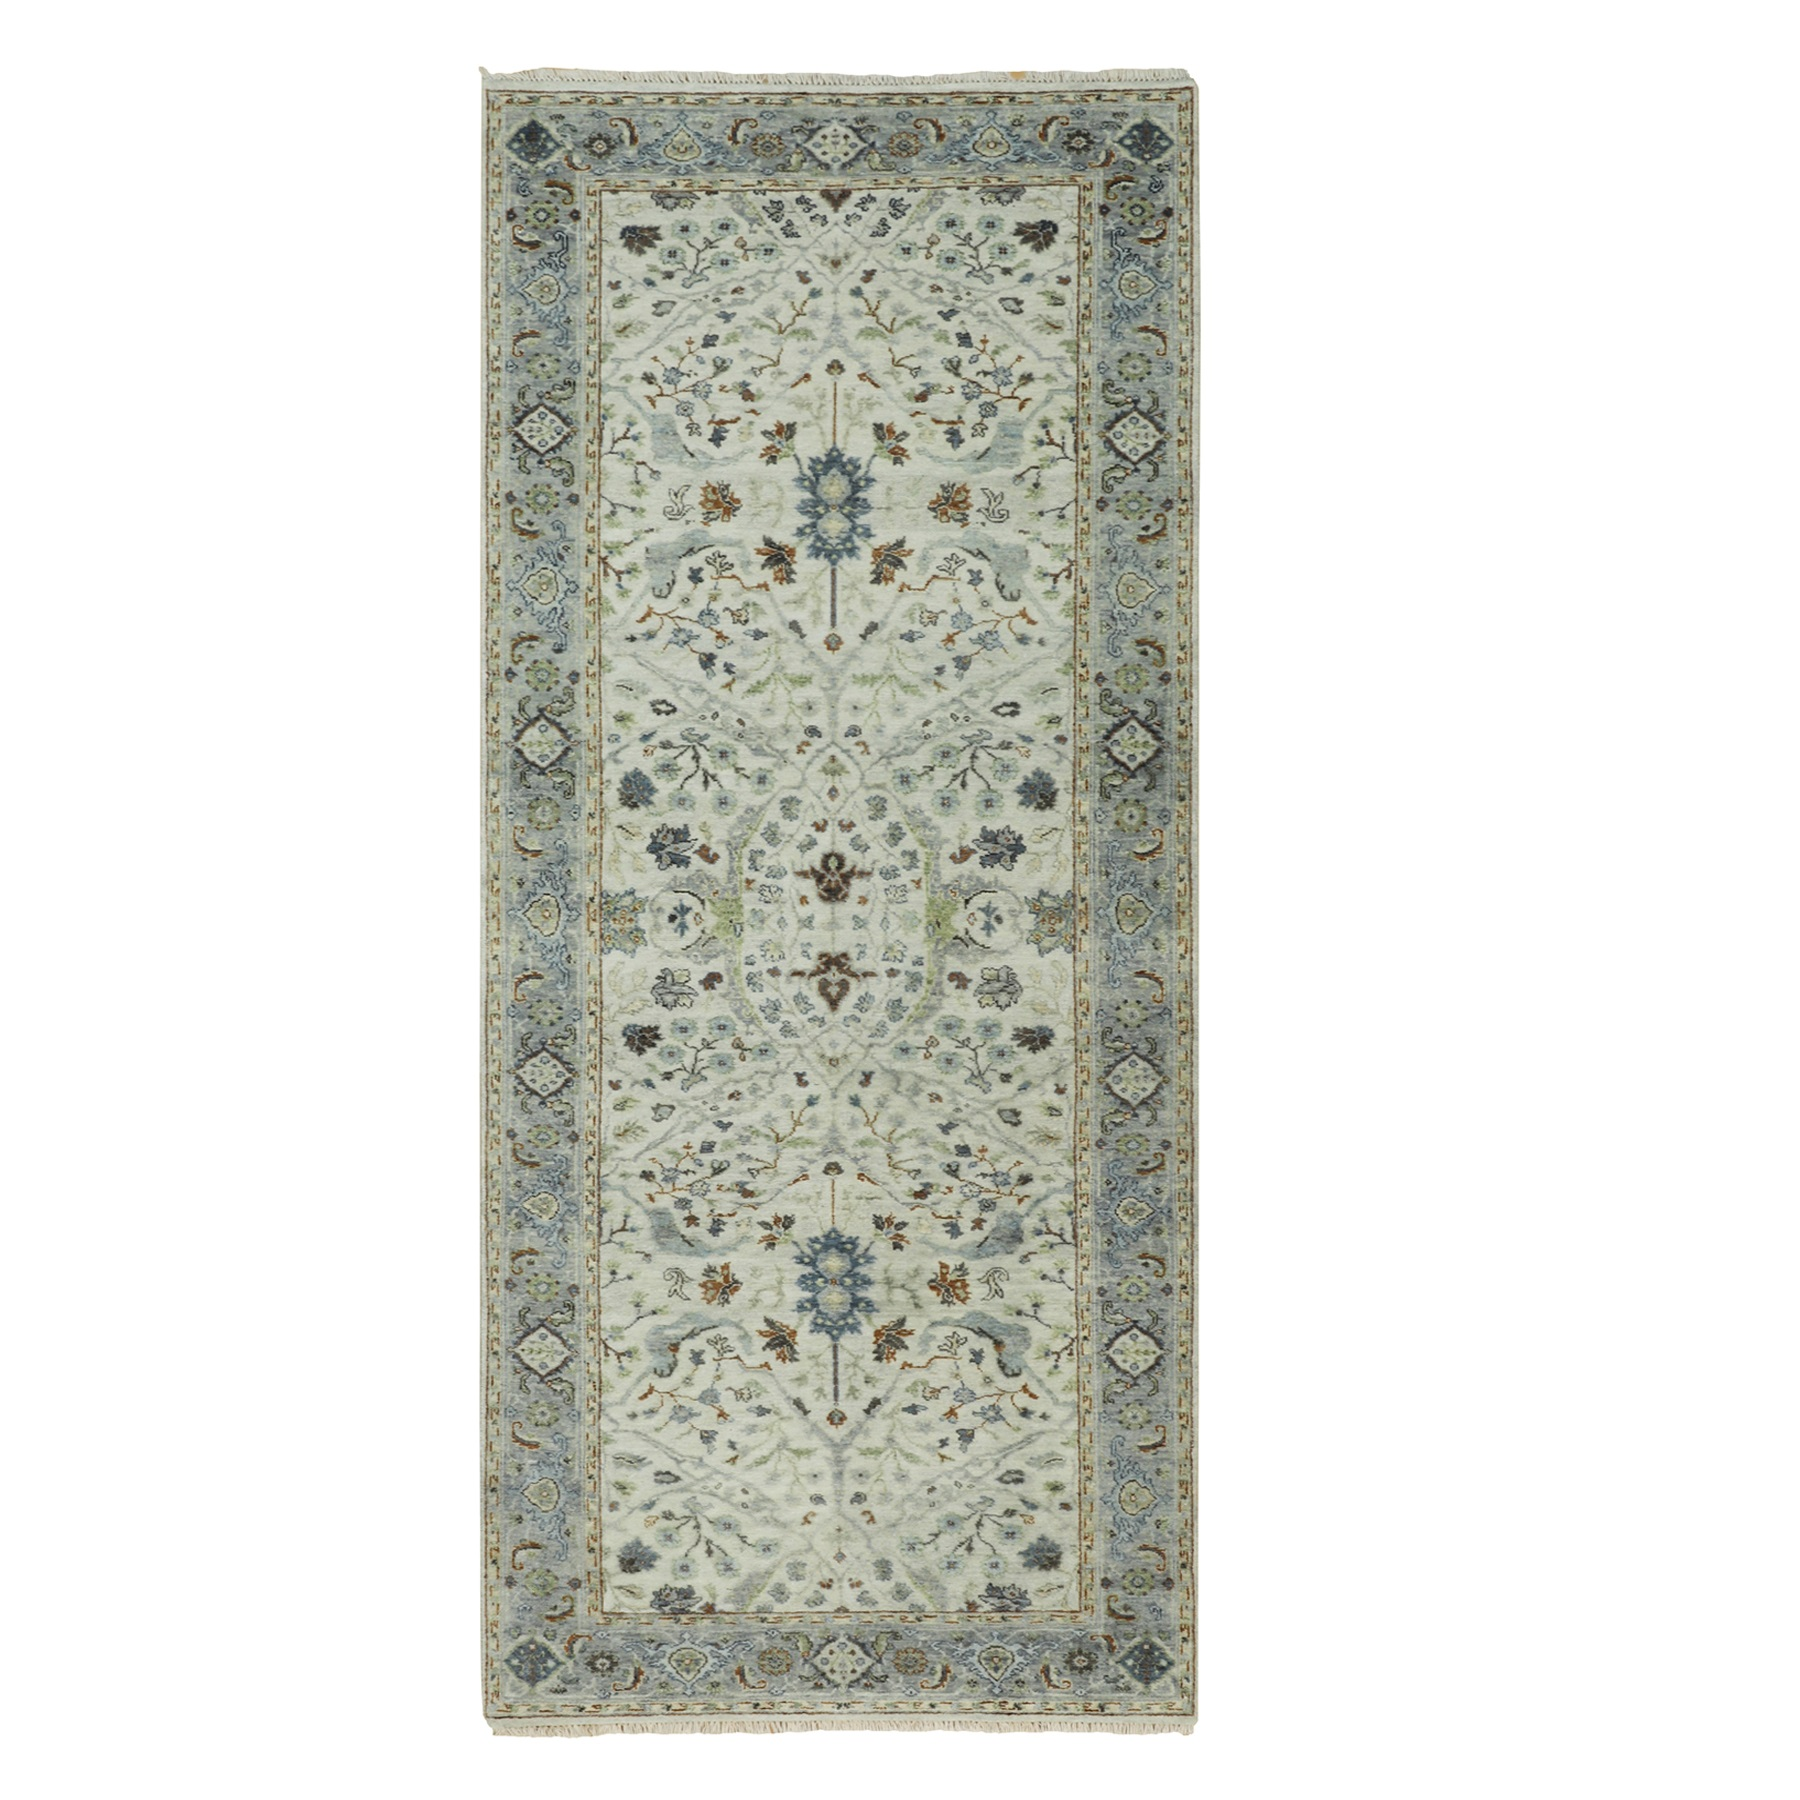 "4'x9'10"" Gray Denser Weave Oushak With Floral Motifs Hand Woven Pure Wool Oriental Wide Runner Rug"